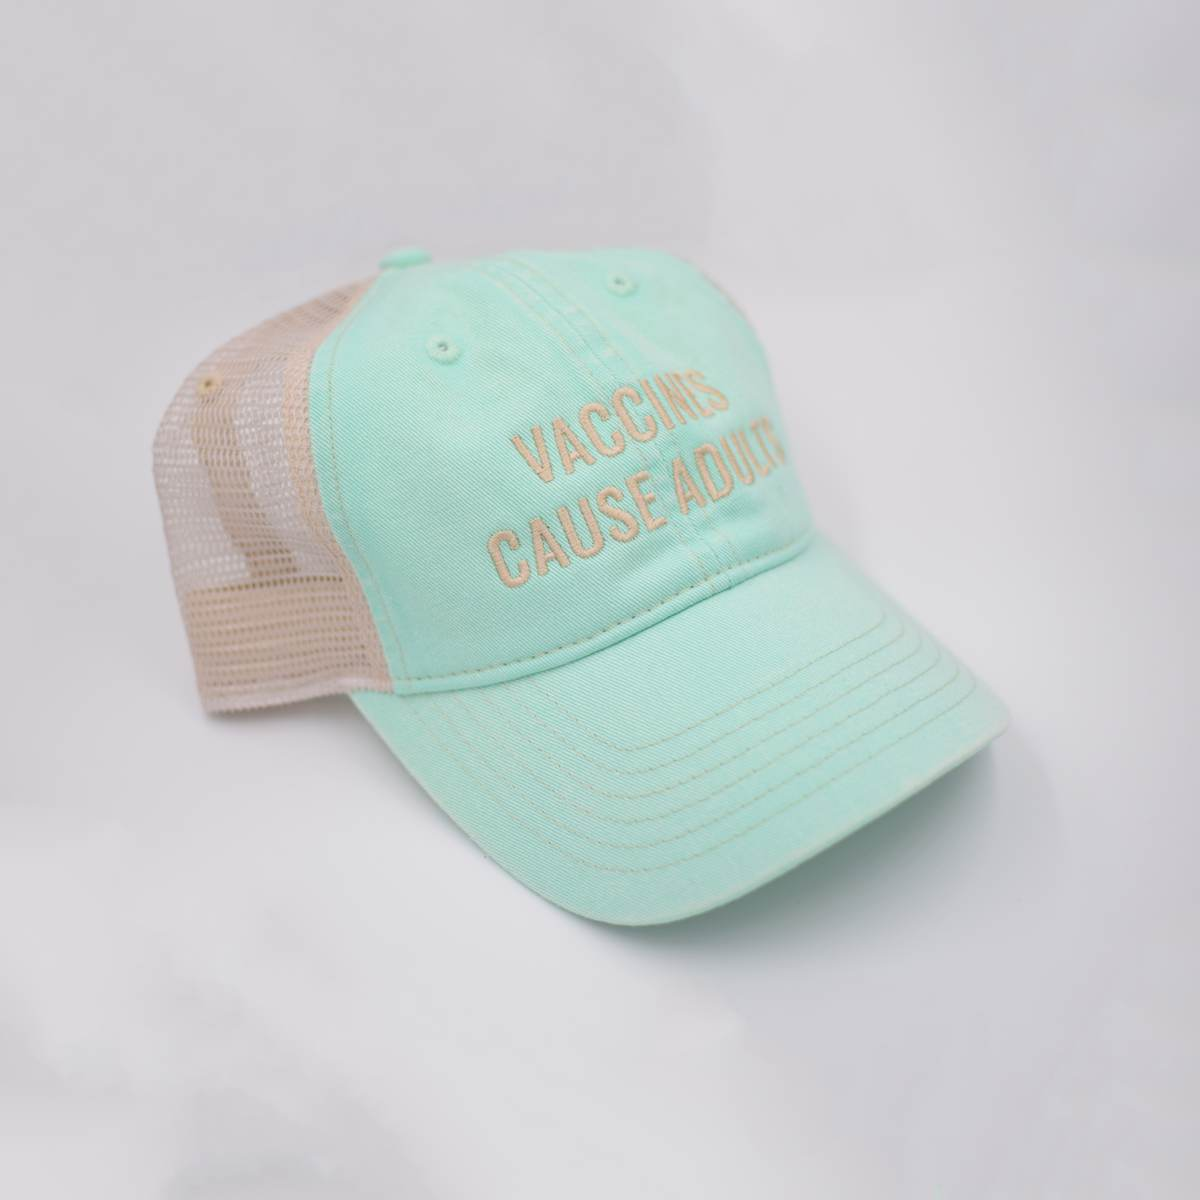 Vaccines Cause Adults Trucker Hat